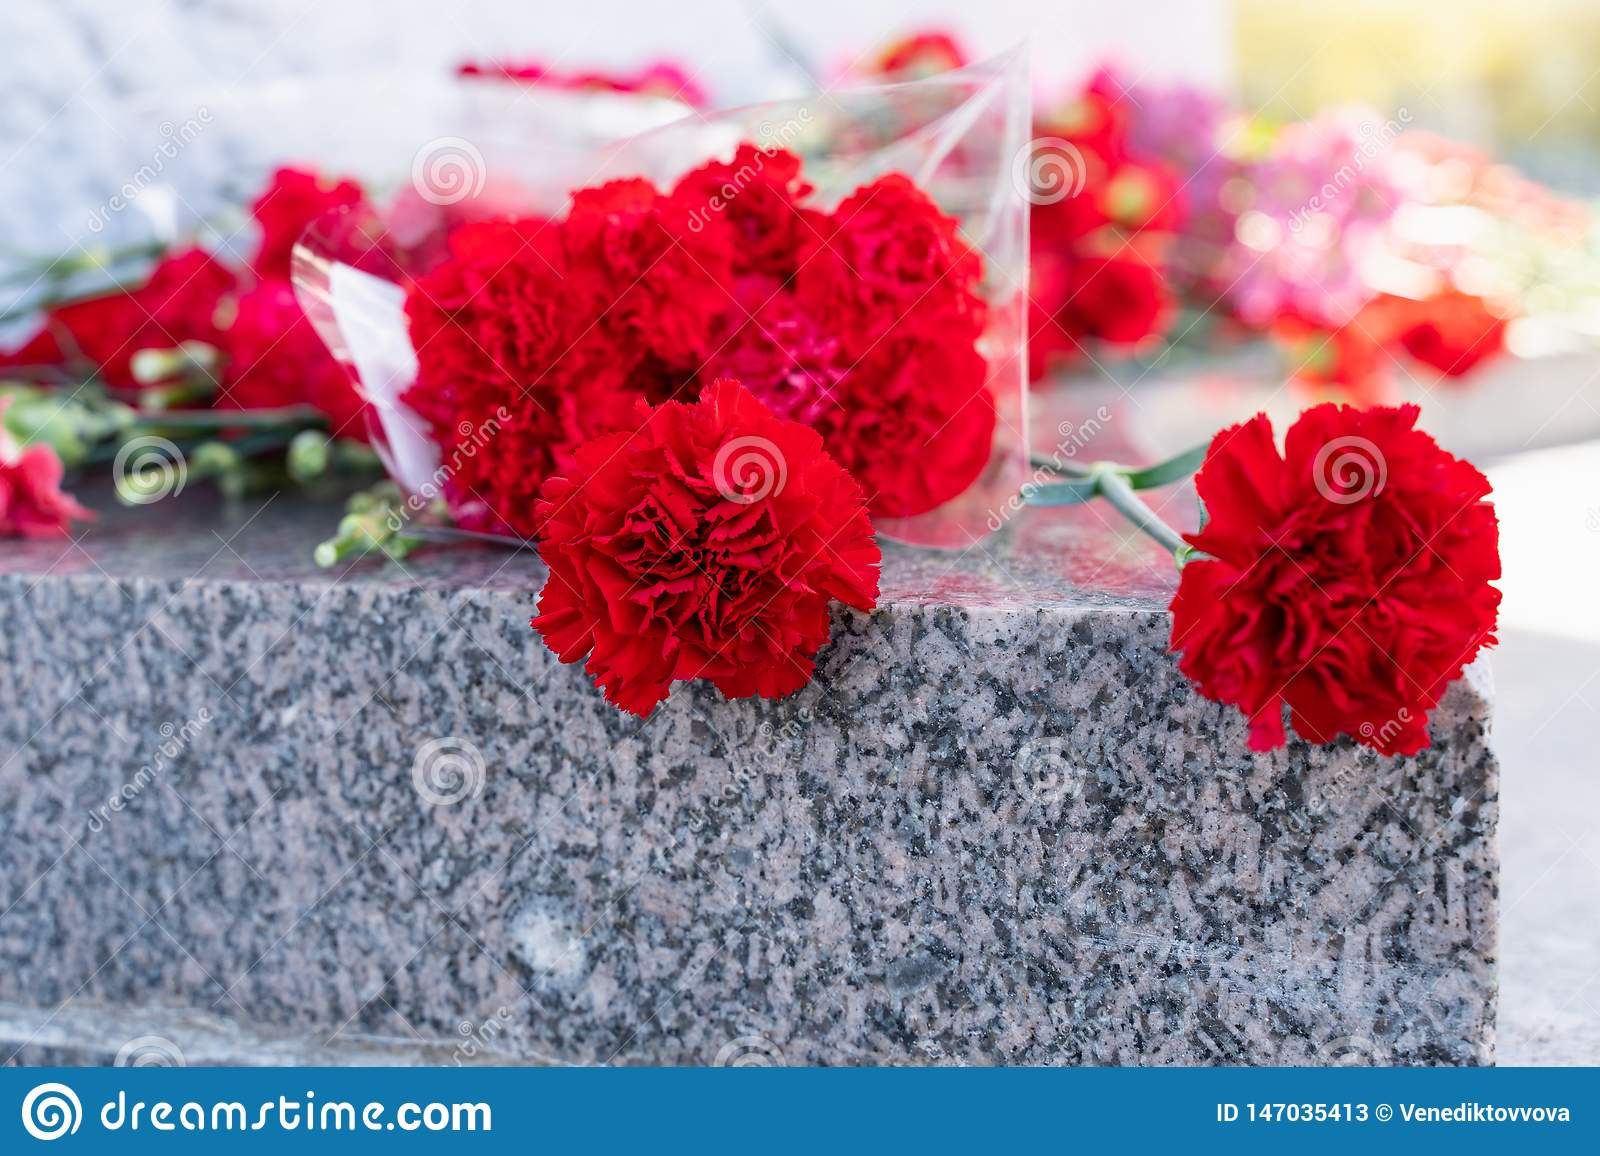 Red carnation flowers at the memorial to fallen soldiers in the world war II